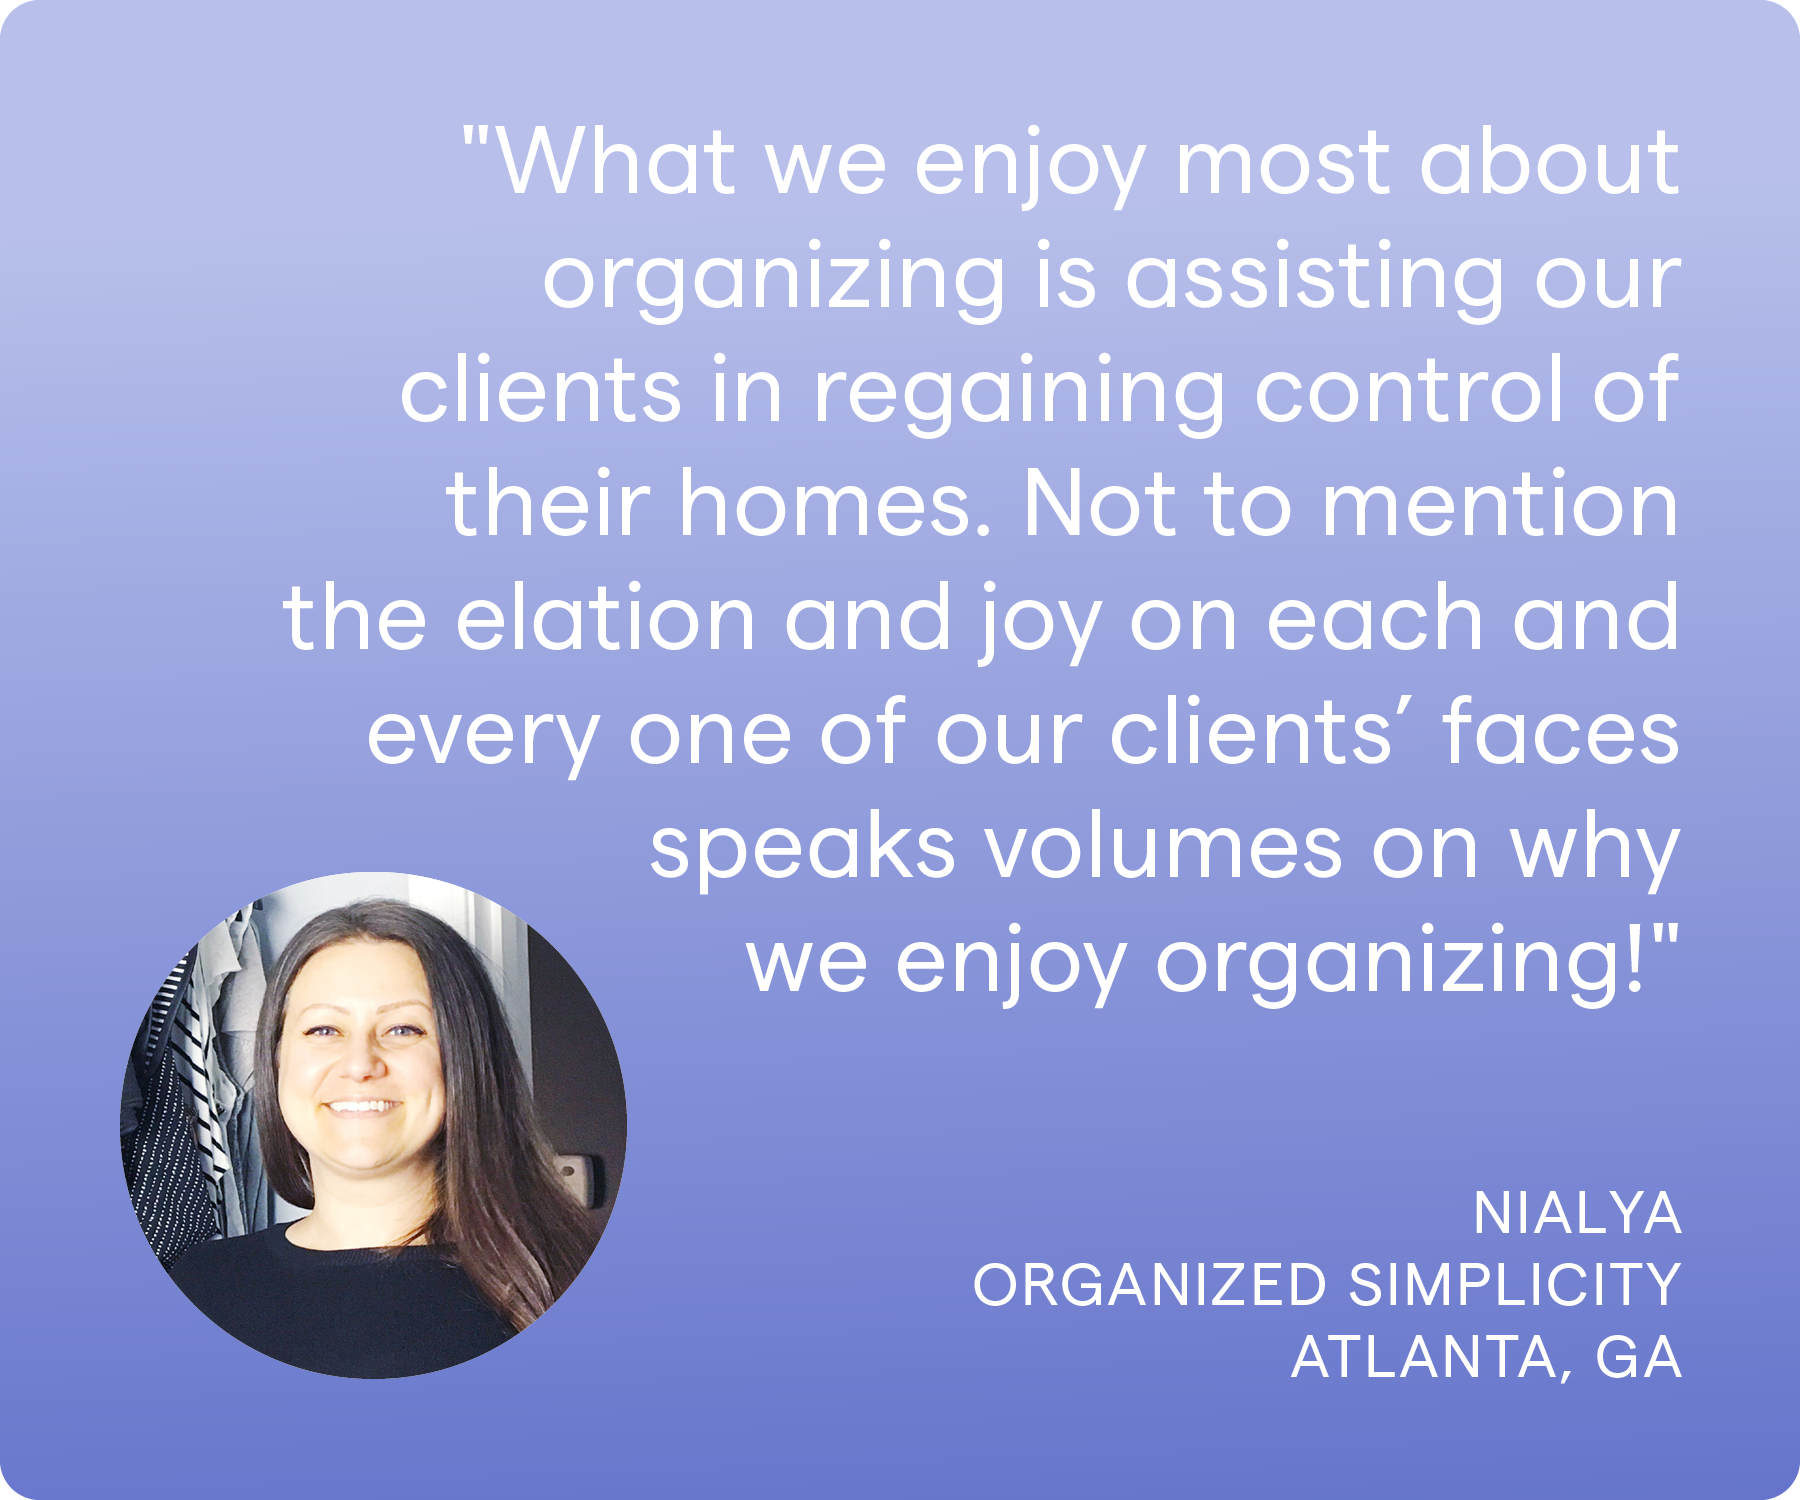 'What we enjoy most about organizing is assisting our clients in regaining control of their homes. Not to mention the elation and joy on each and every one of our clients' faces speaks volumes on why we enjoy organizing!' Nialya, Organized Simplicity, Atlanta